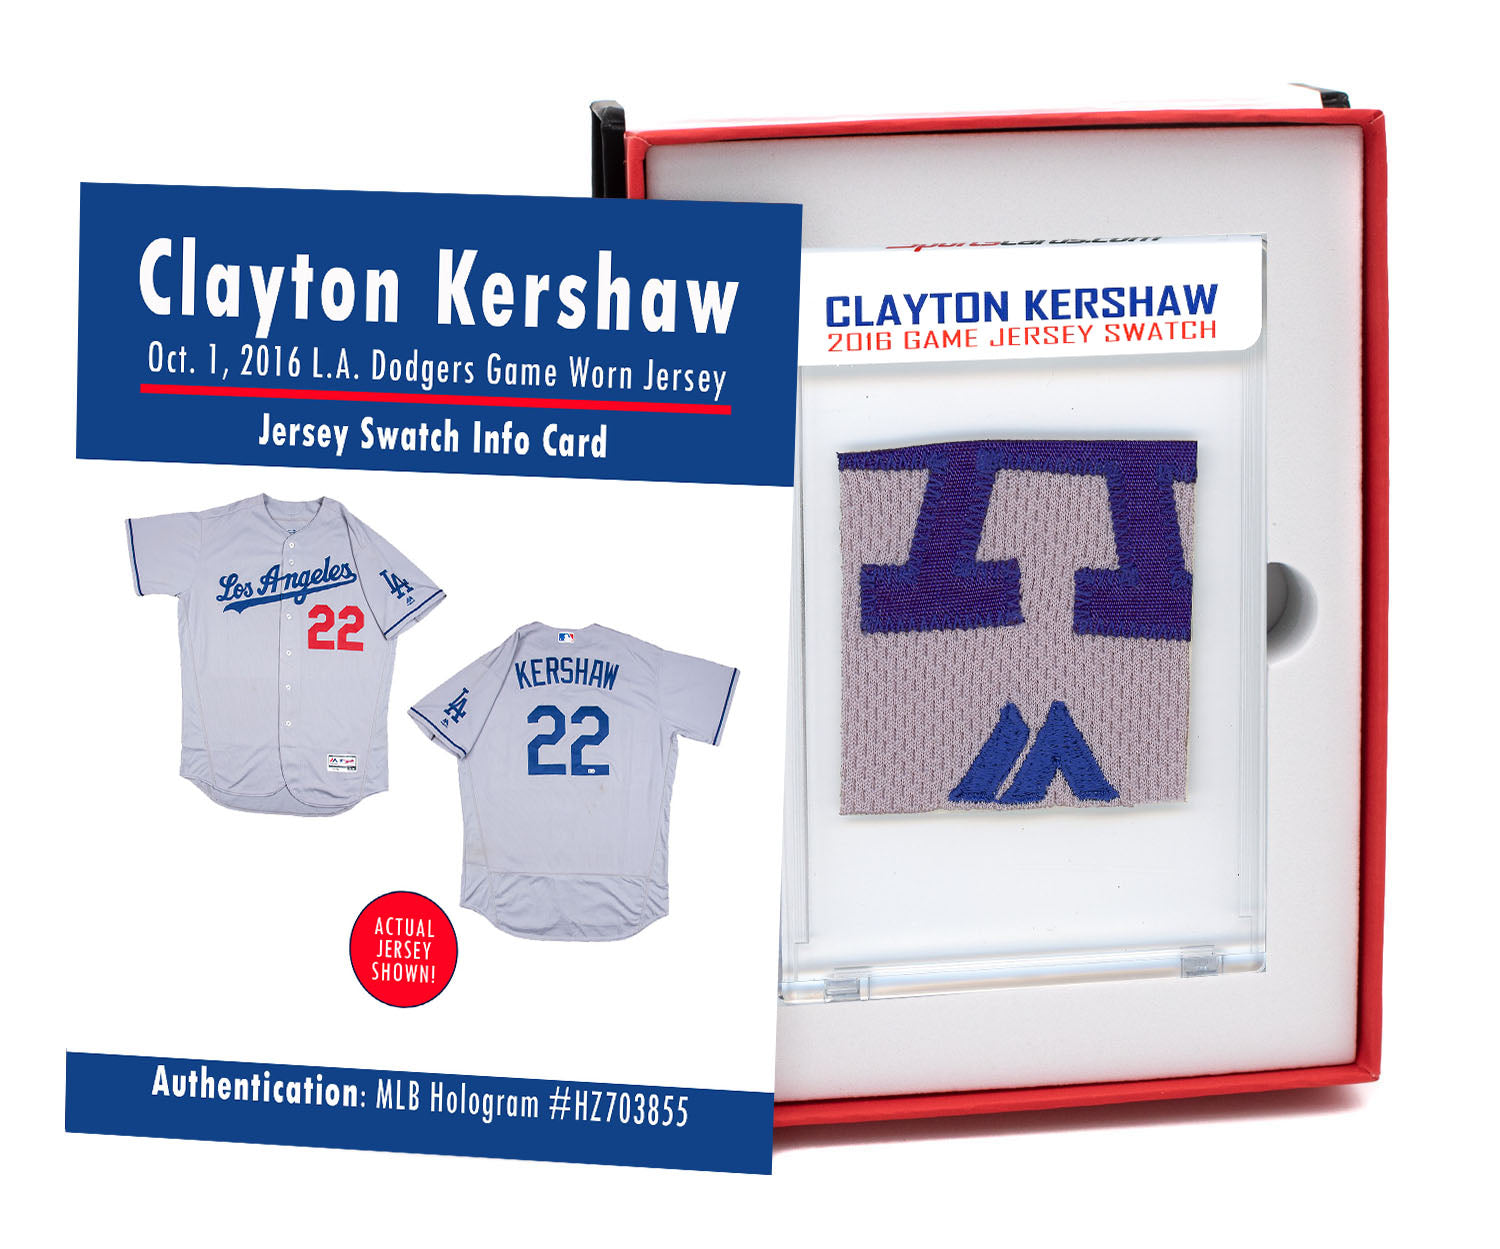 CLAYTON KERSHAW 2016 DODGERS GAME WORN JERSEY MYSTERY SEALED SWATCH BOX!